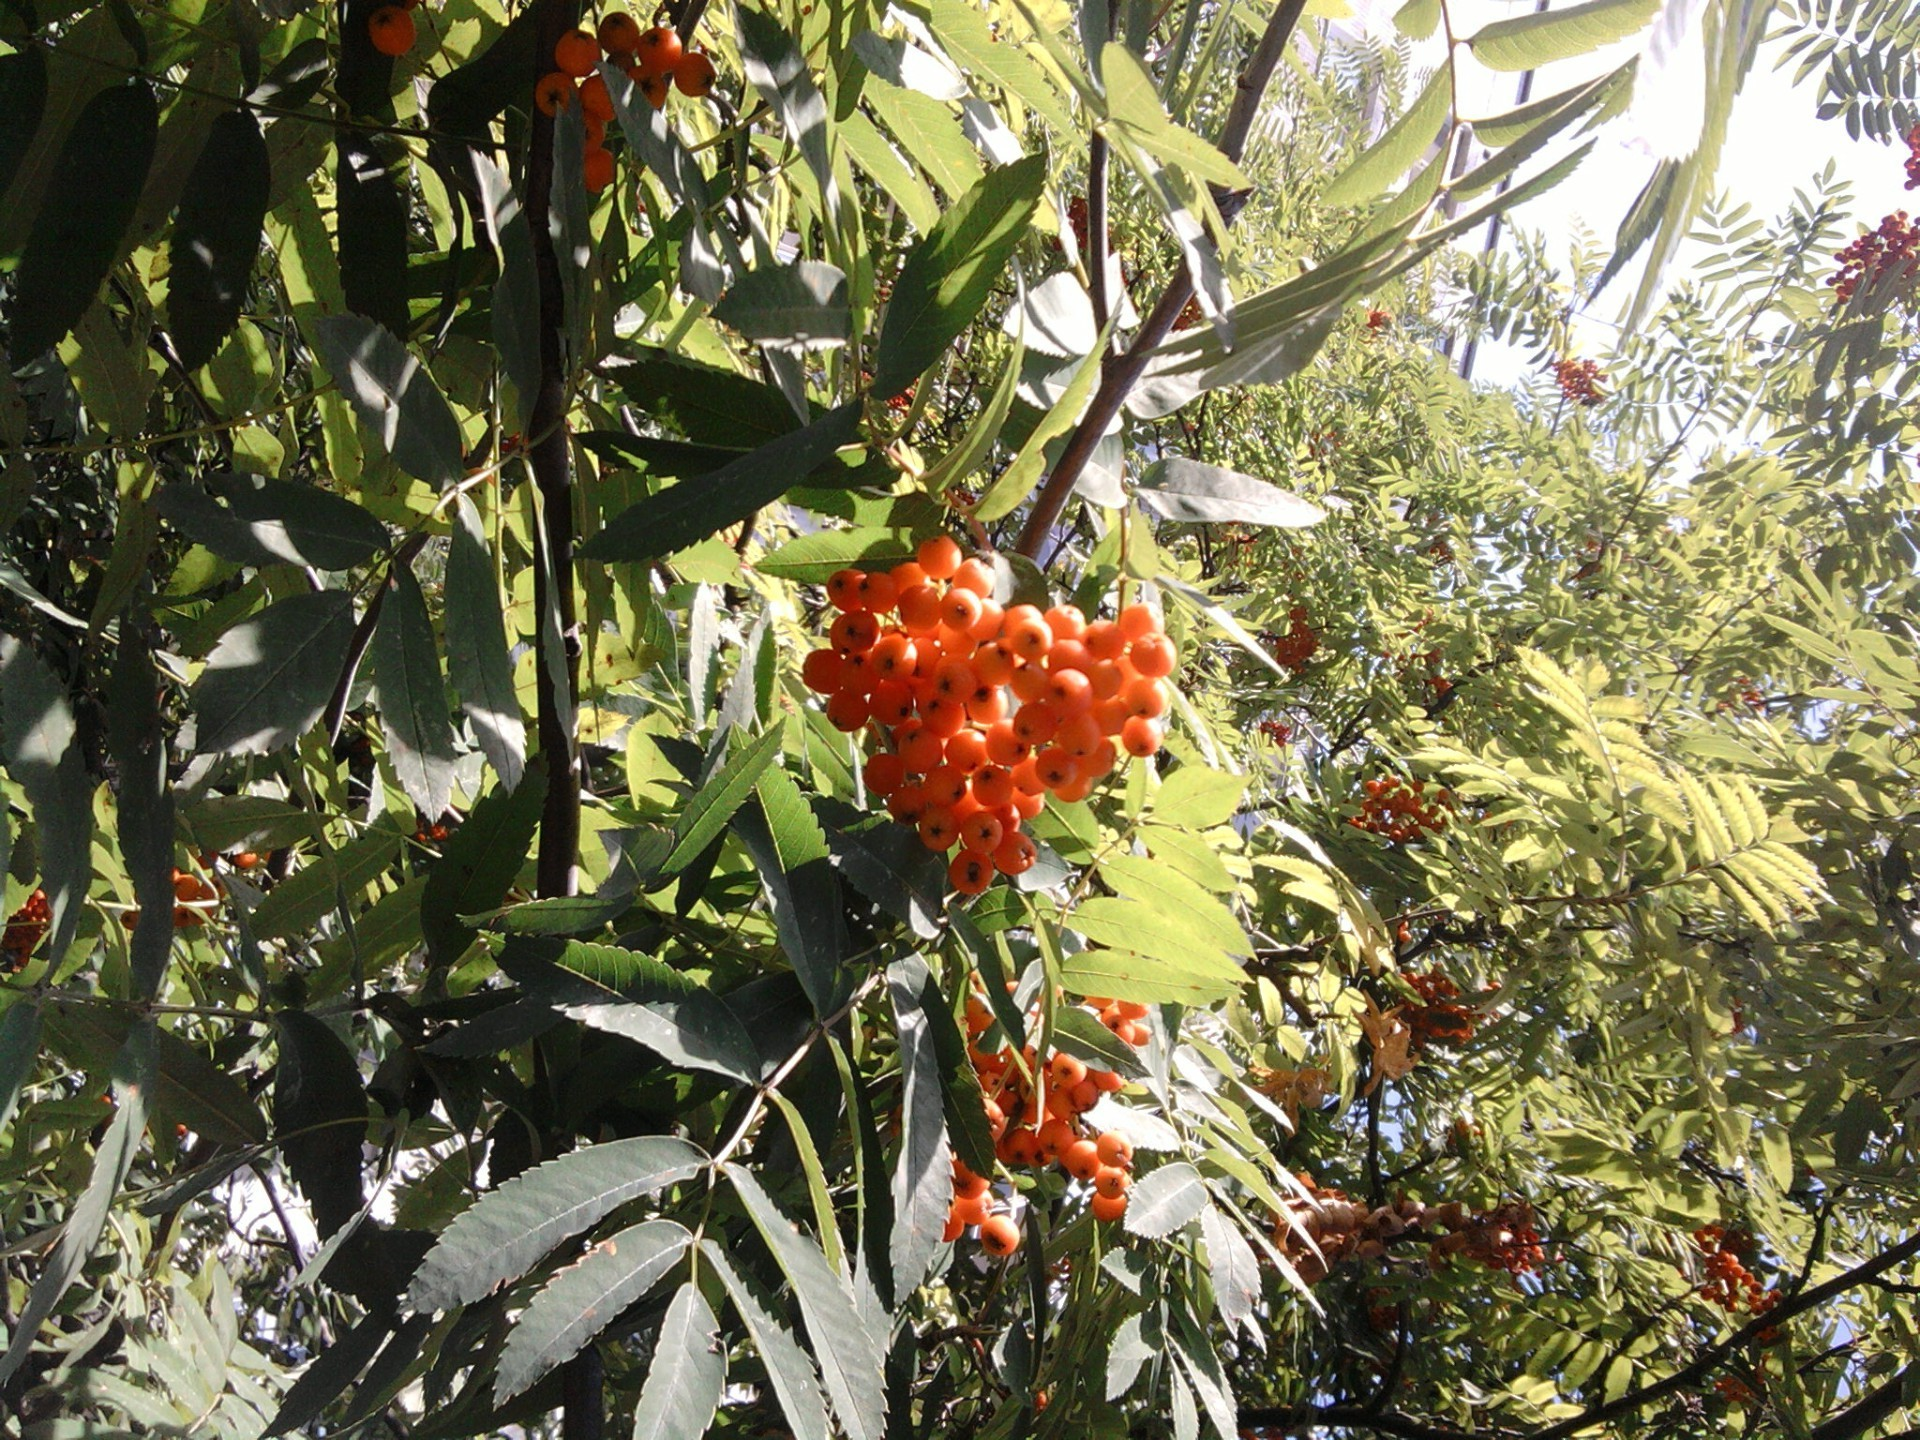 berries tree leaf flora fruit nature garden branch flower shrub agriculture food color outdoors summer season bright growth farm berry